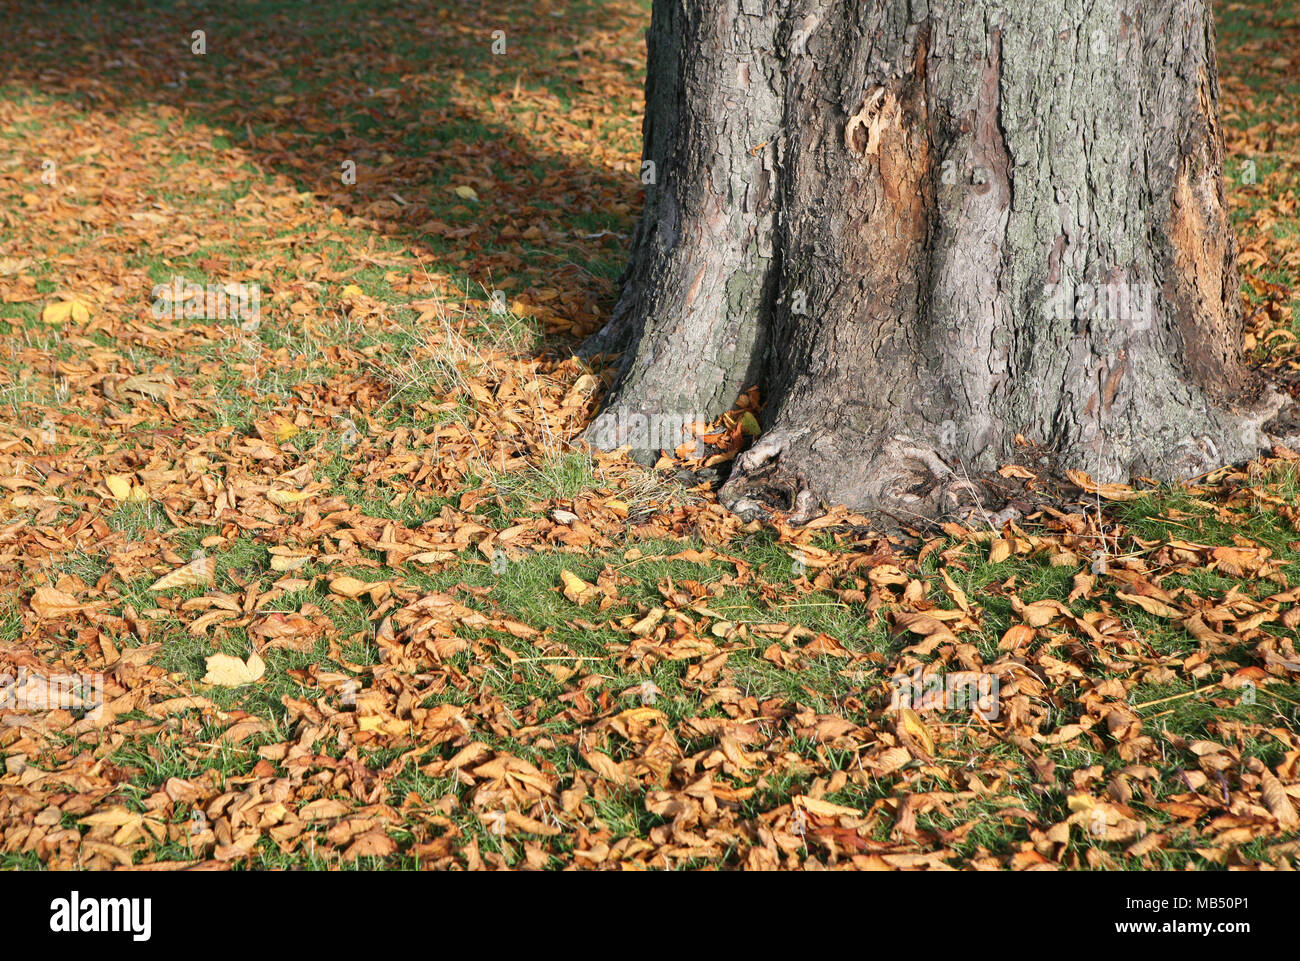 Tree trunk base in yellow brown leaves field - Stock Image